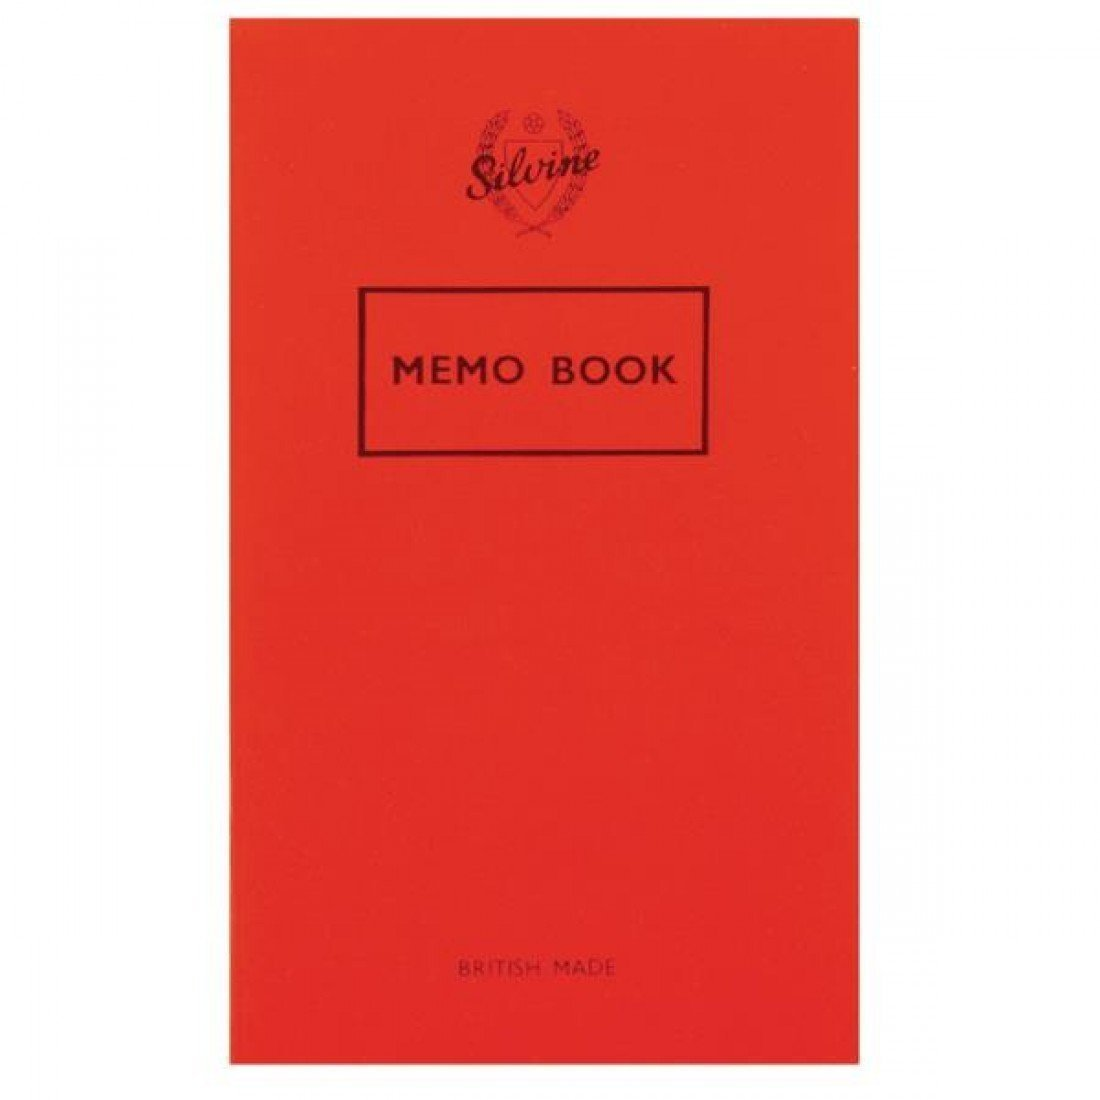 Silvine Memo Book 159X95MM 36LF PK24